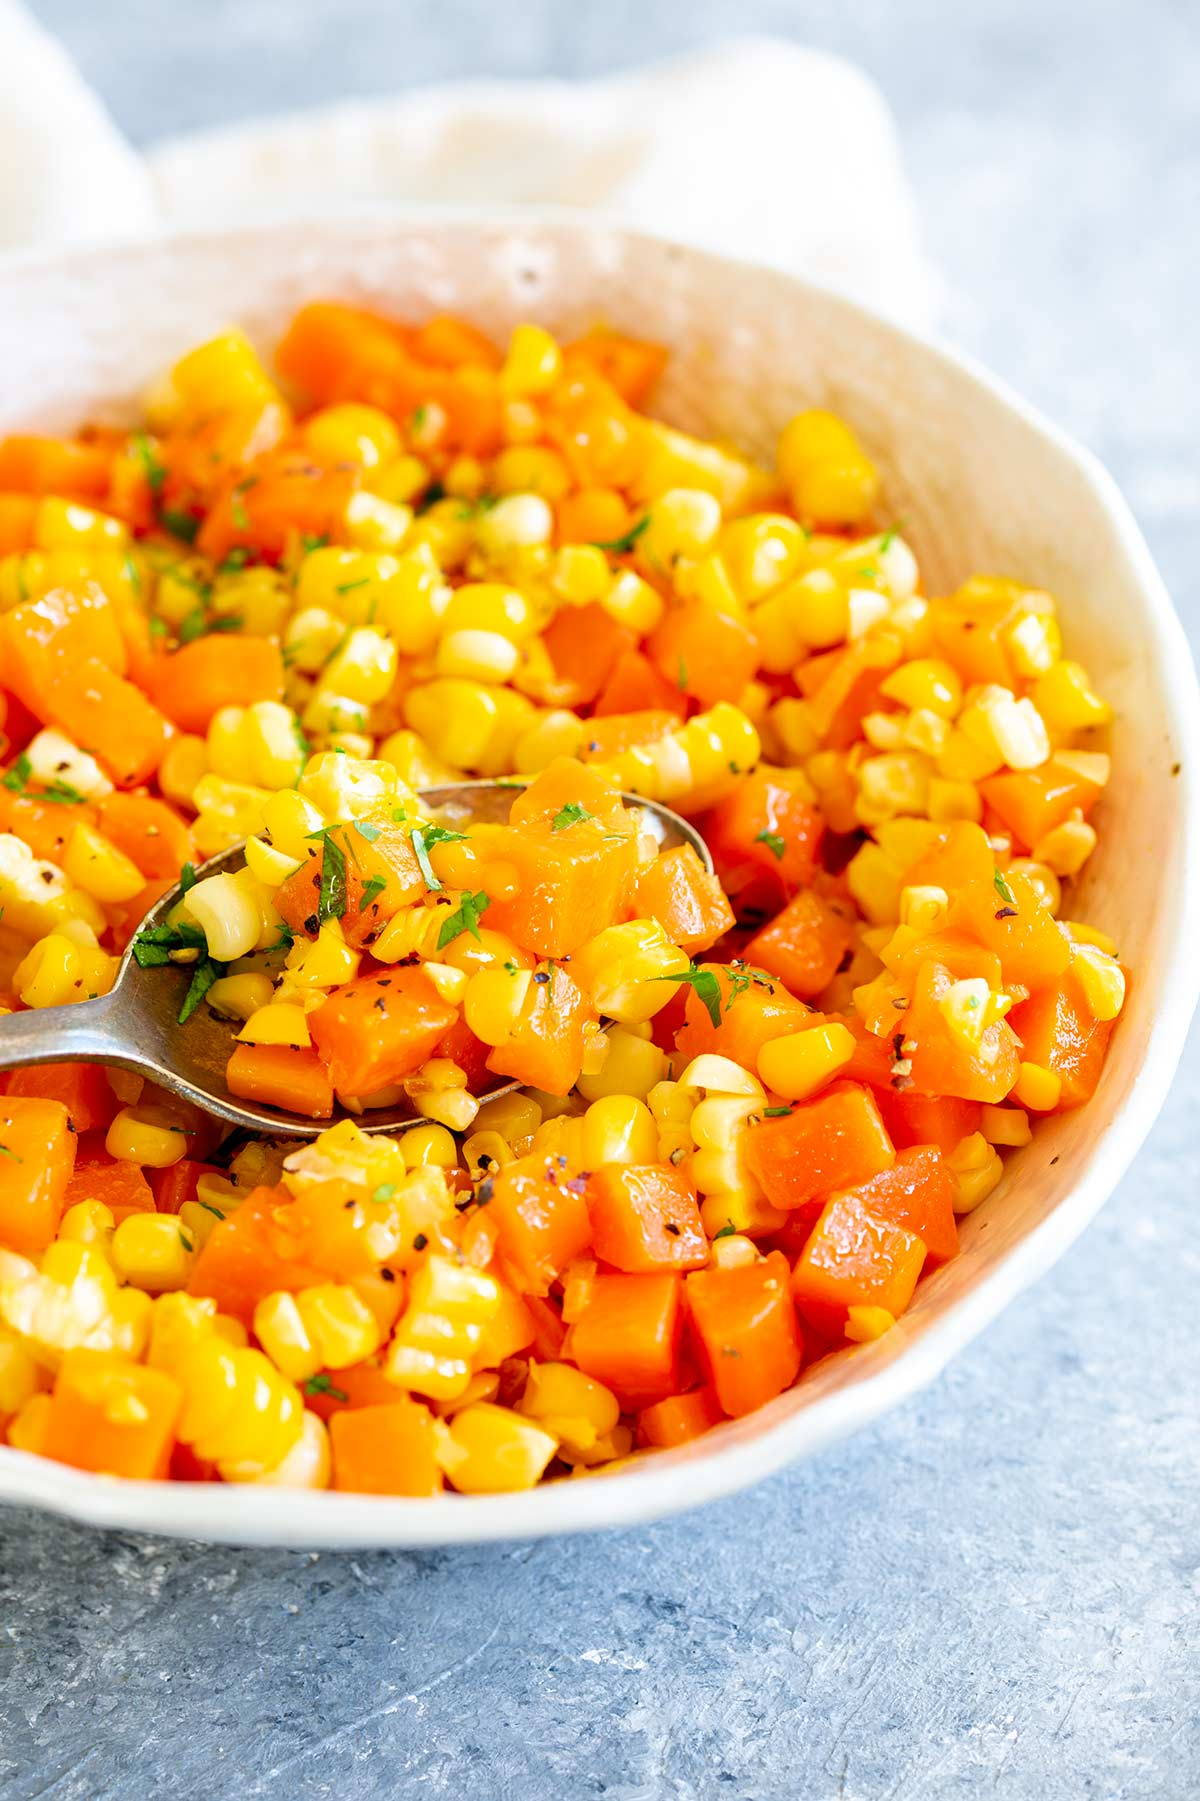 a whit bowl of carrots and corn on a grey table